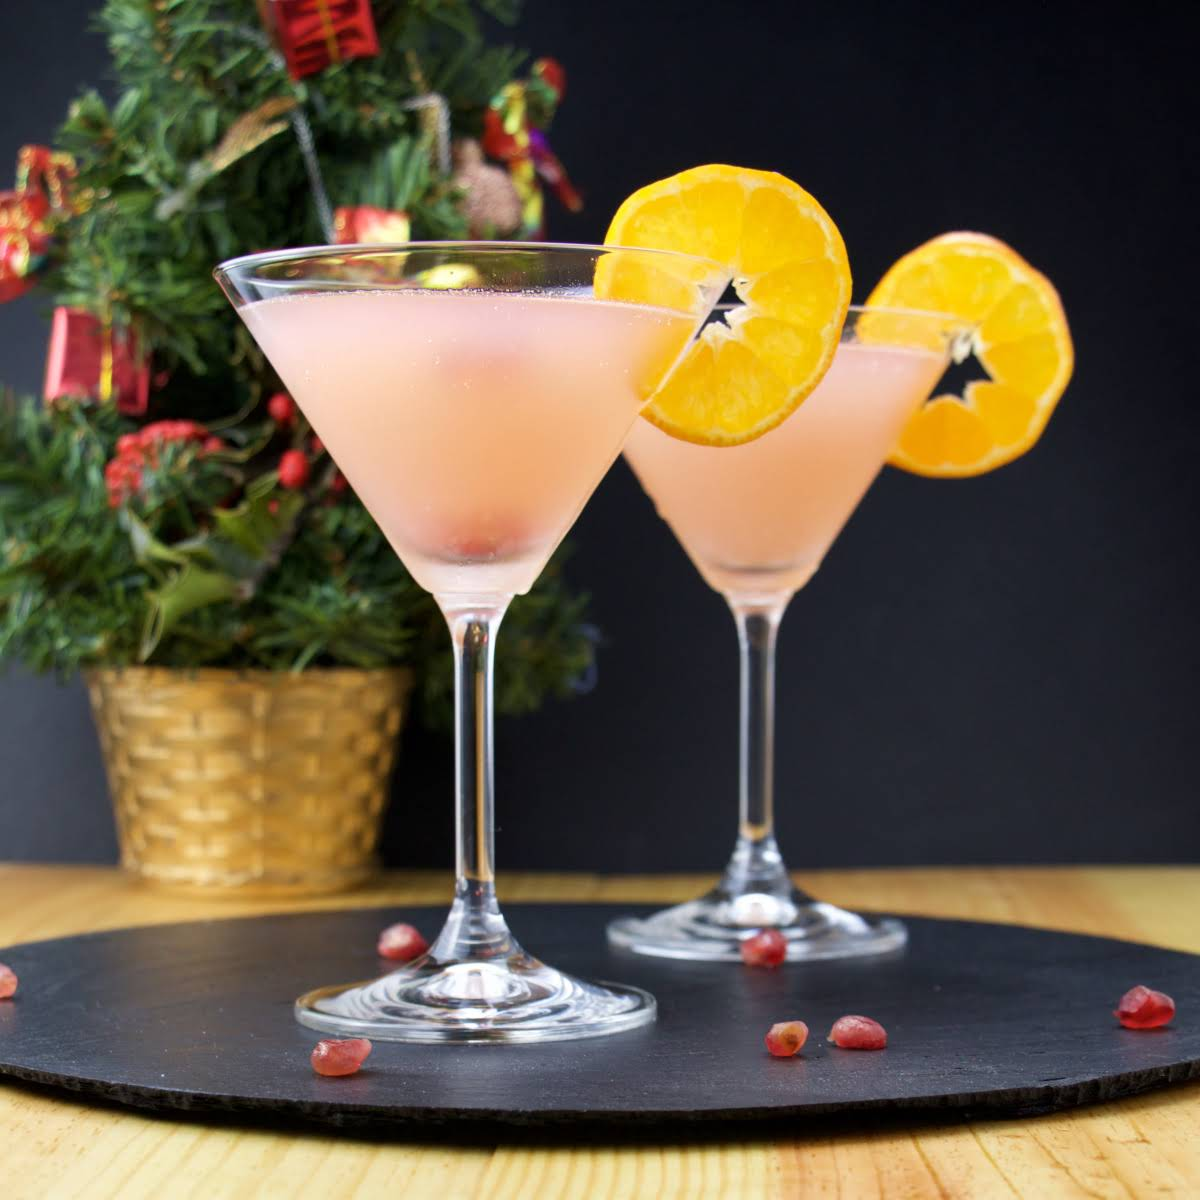 10 Best Pomegranate Vodka Martini Recipes